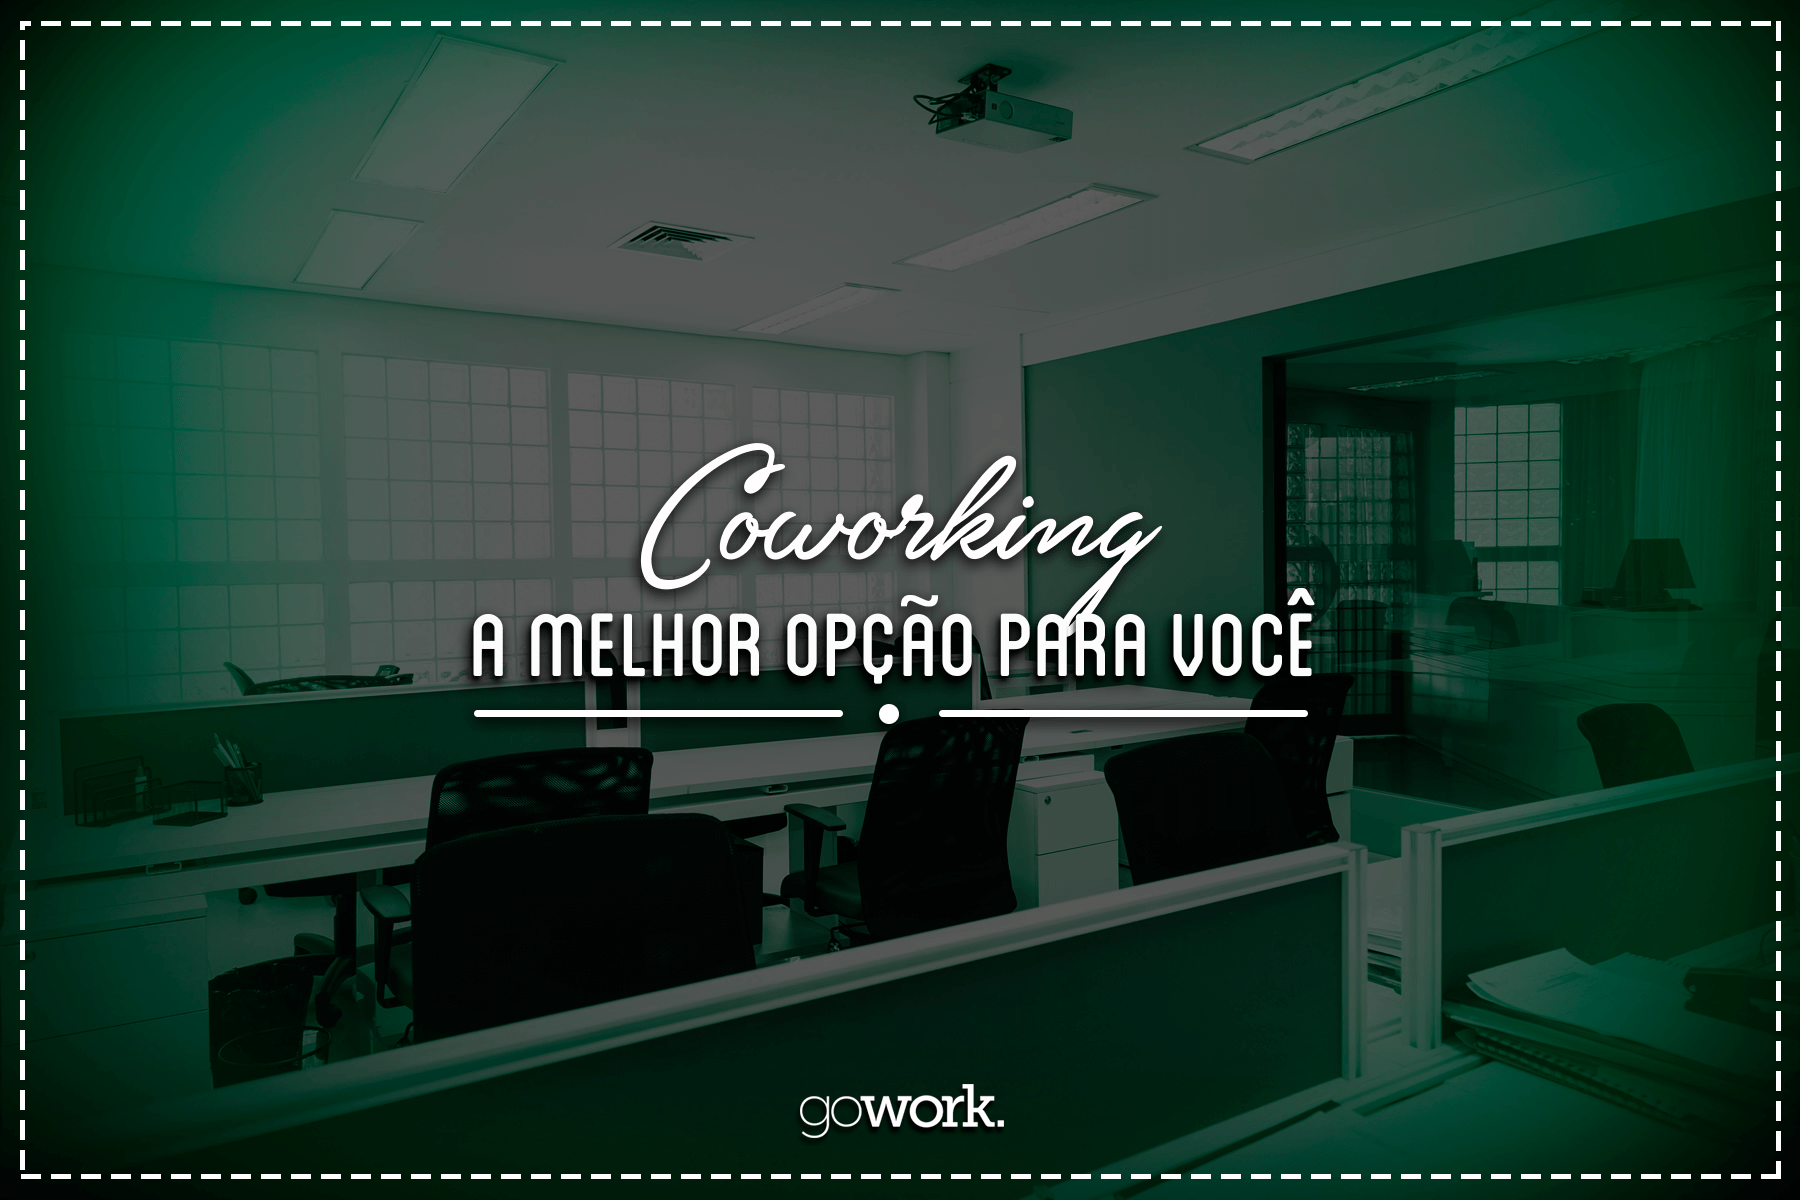 Coworking-Gowork-10-12-15-Blog-PMES